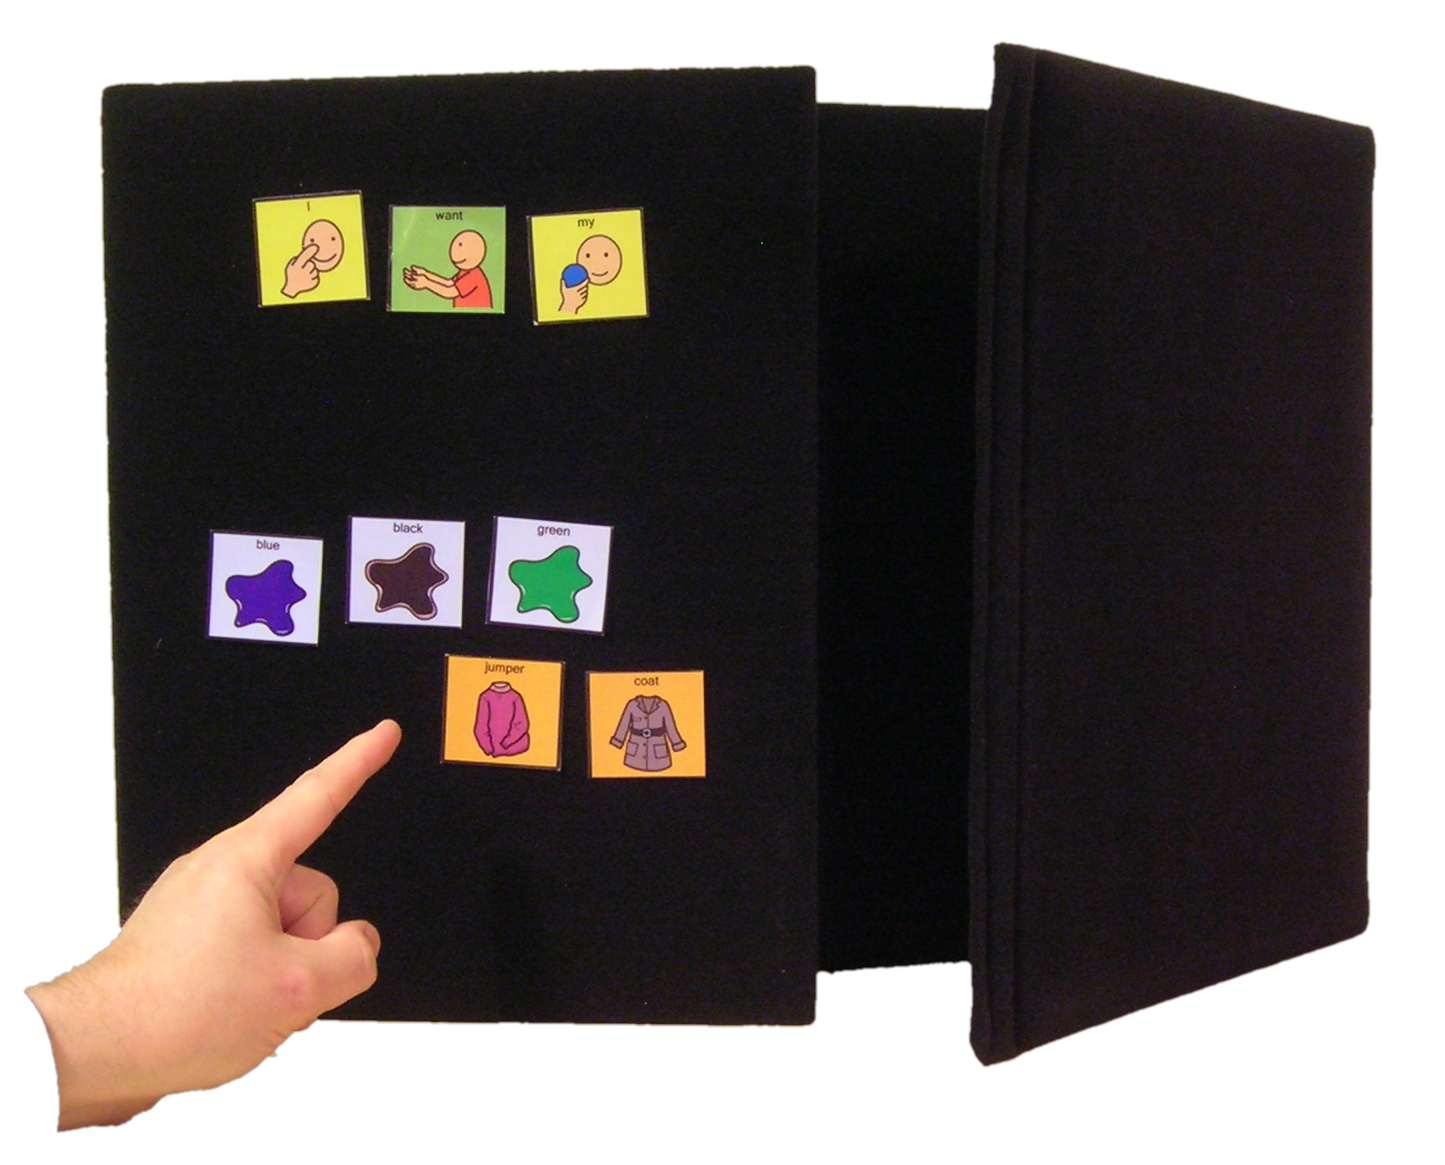 Ability World tri-fold A2 landscape communication / choice board or portable display board